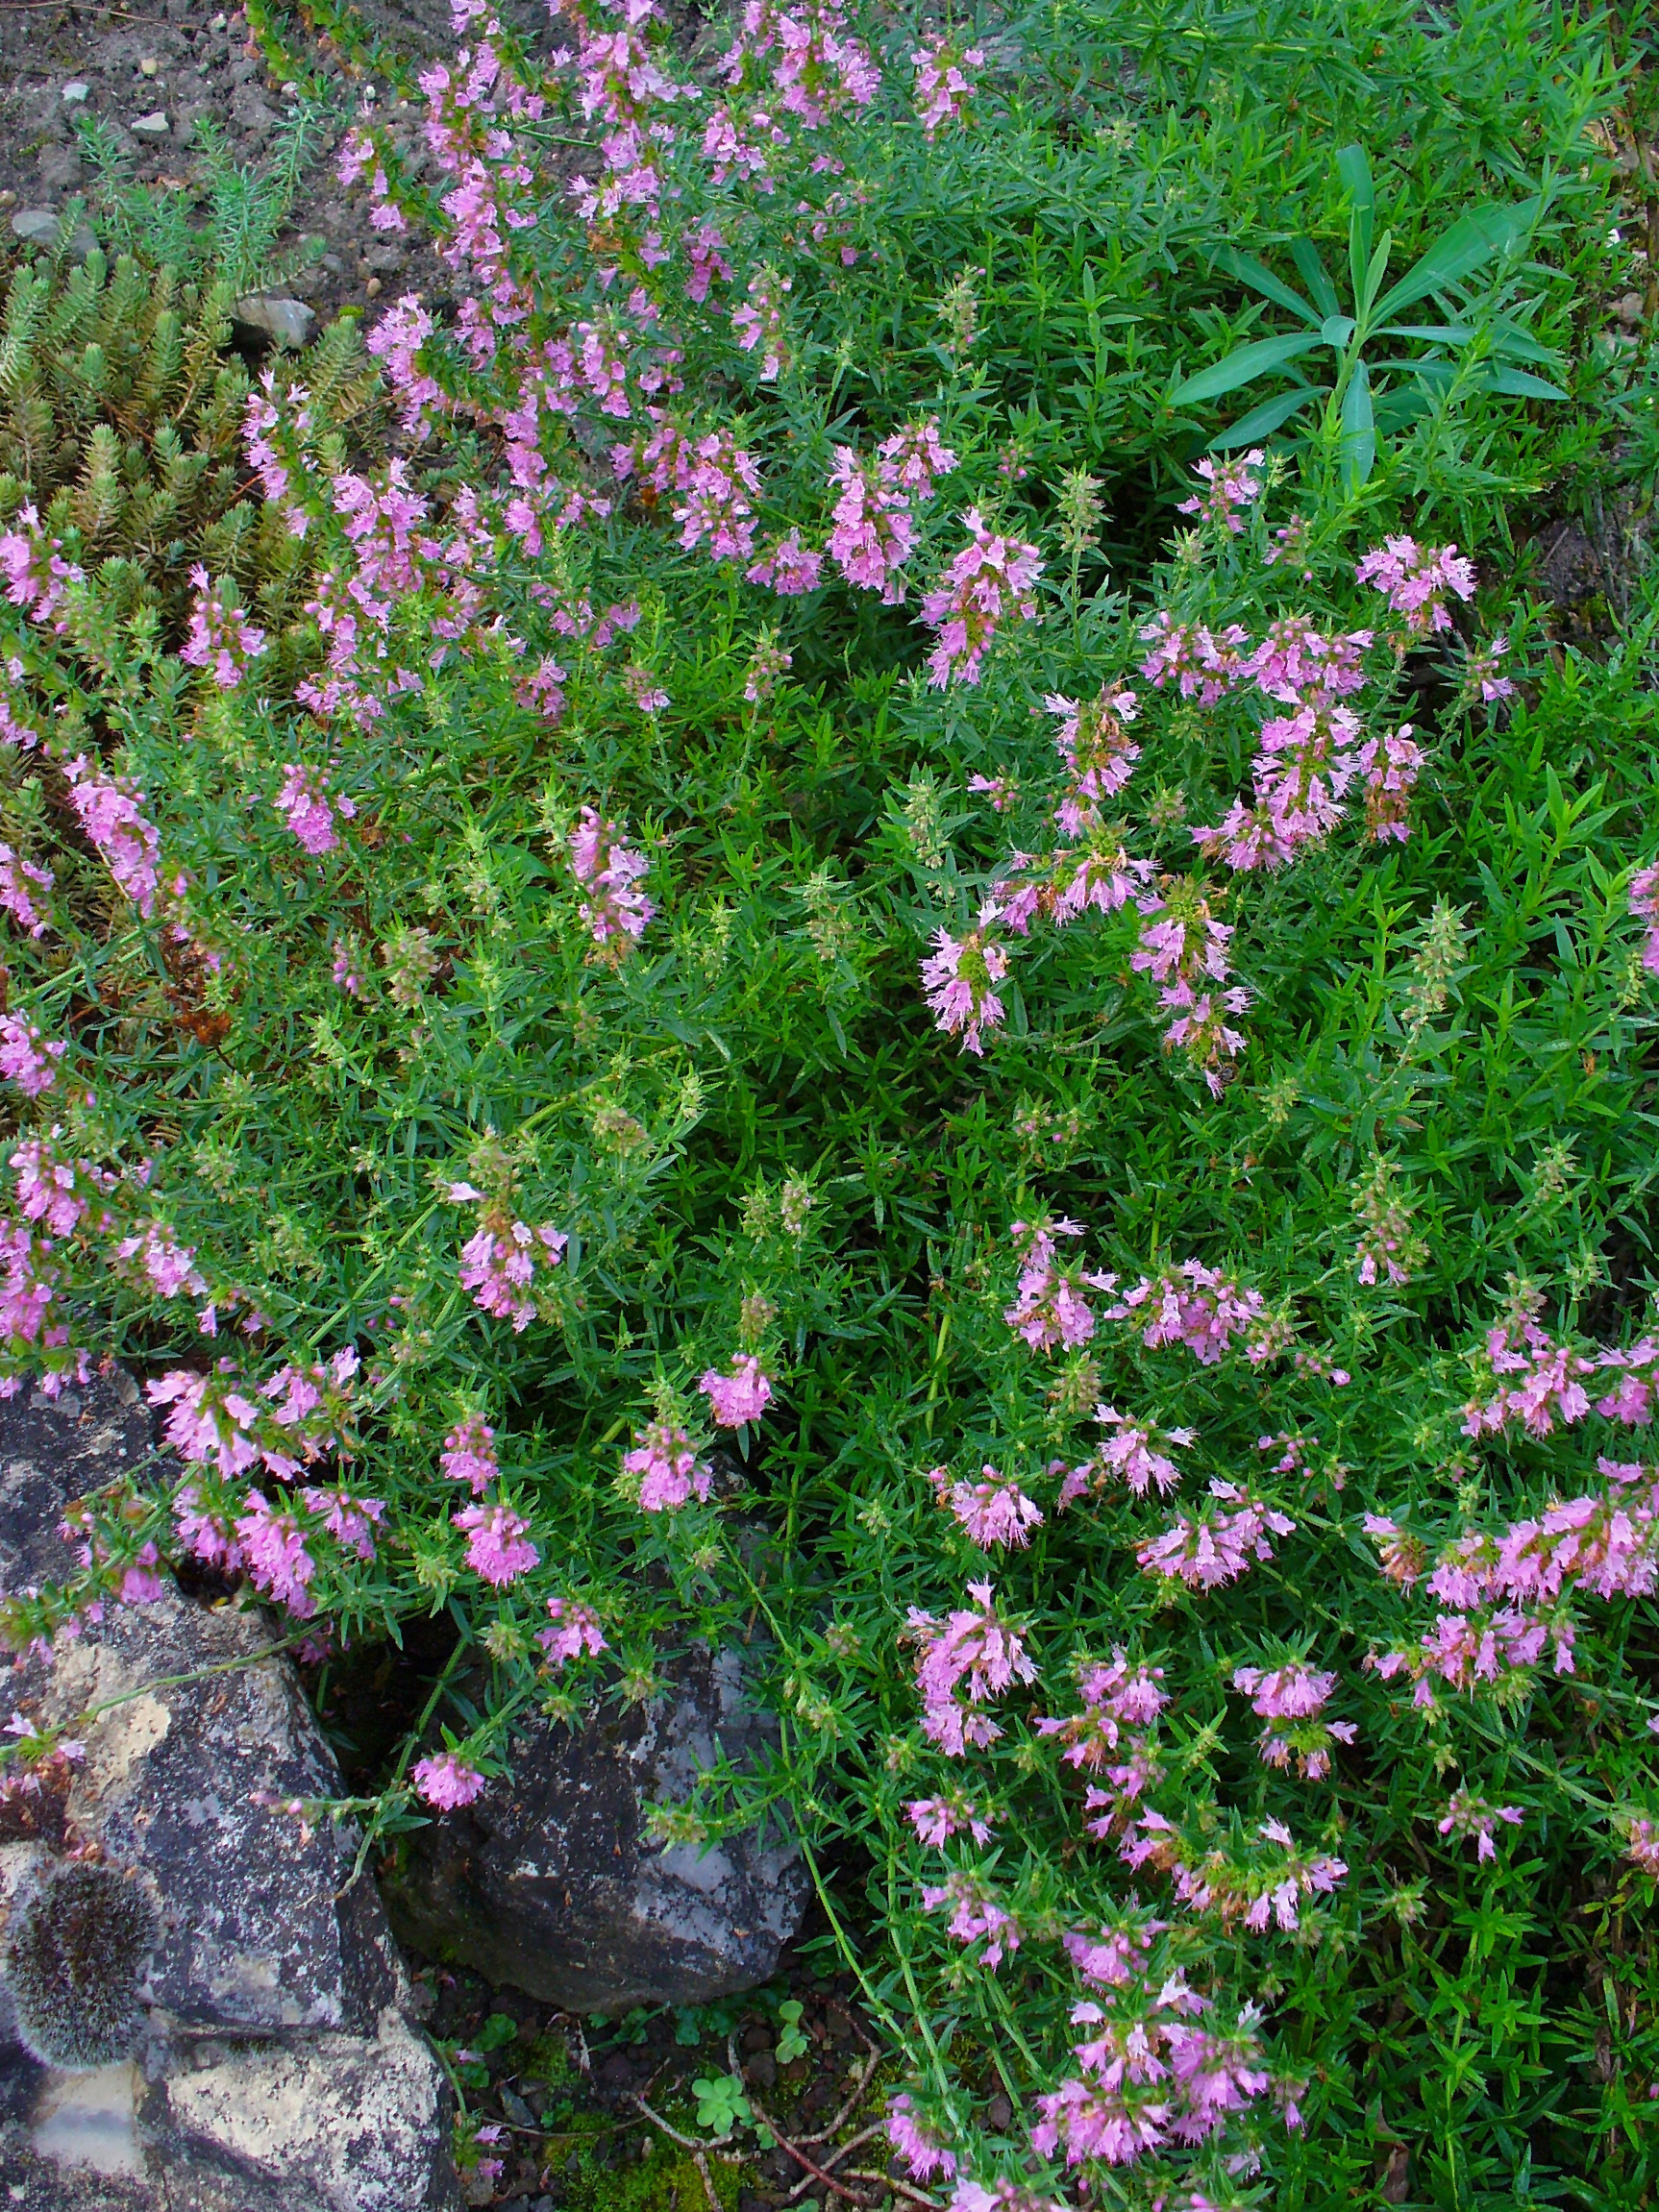 Hyssopus officinalis